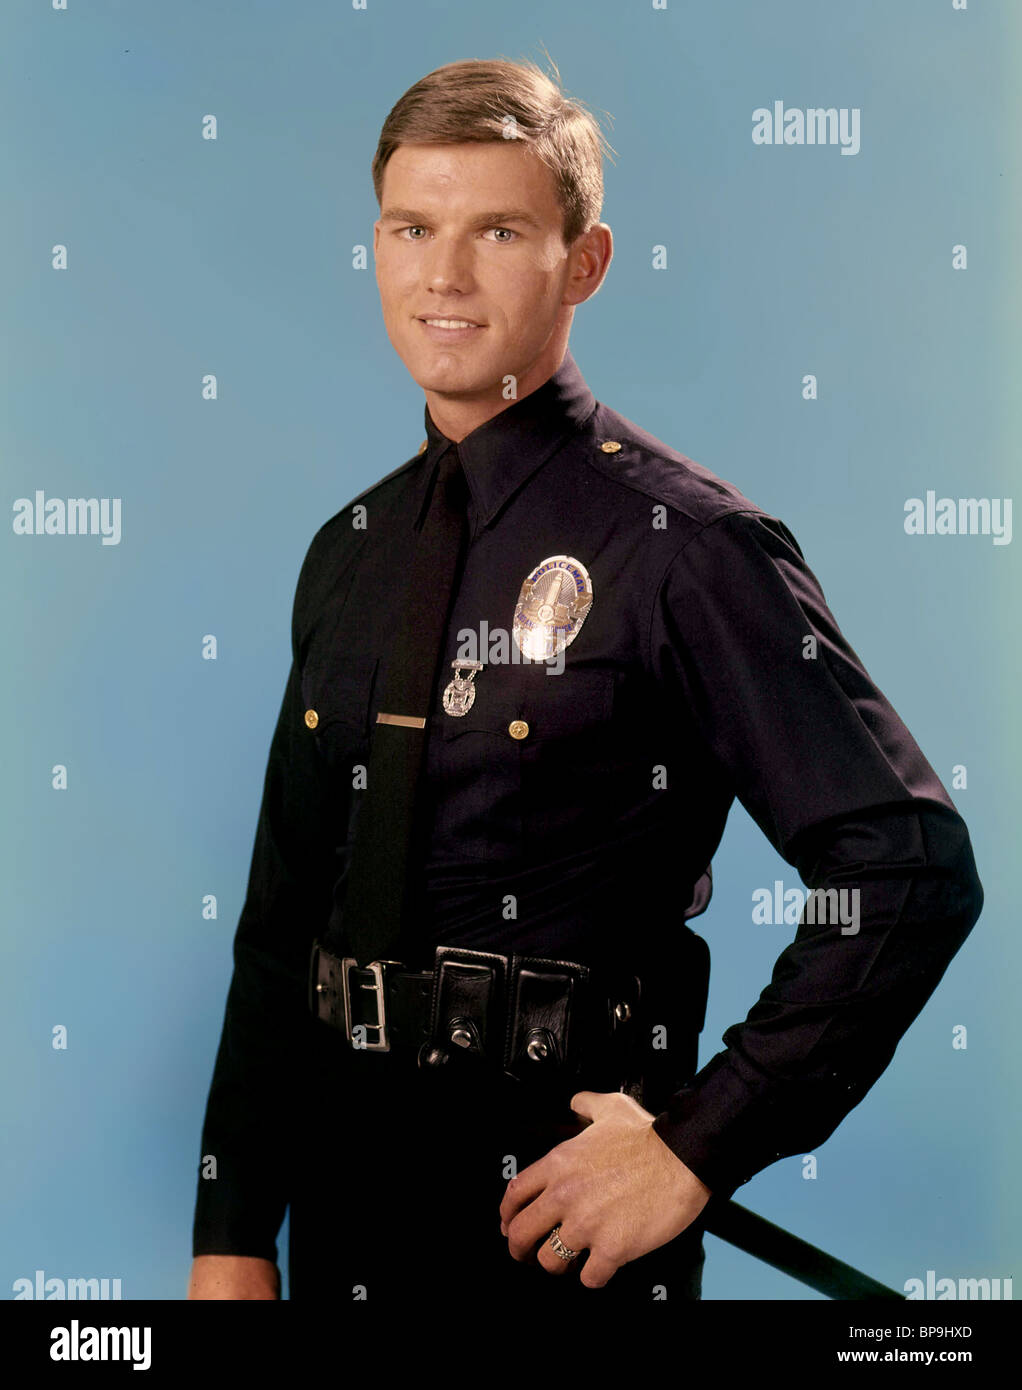 KENT MCCORD ADAM-12 (1968) - Stock Image